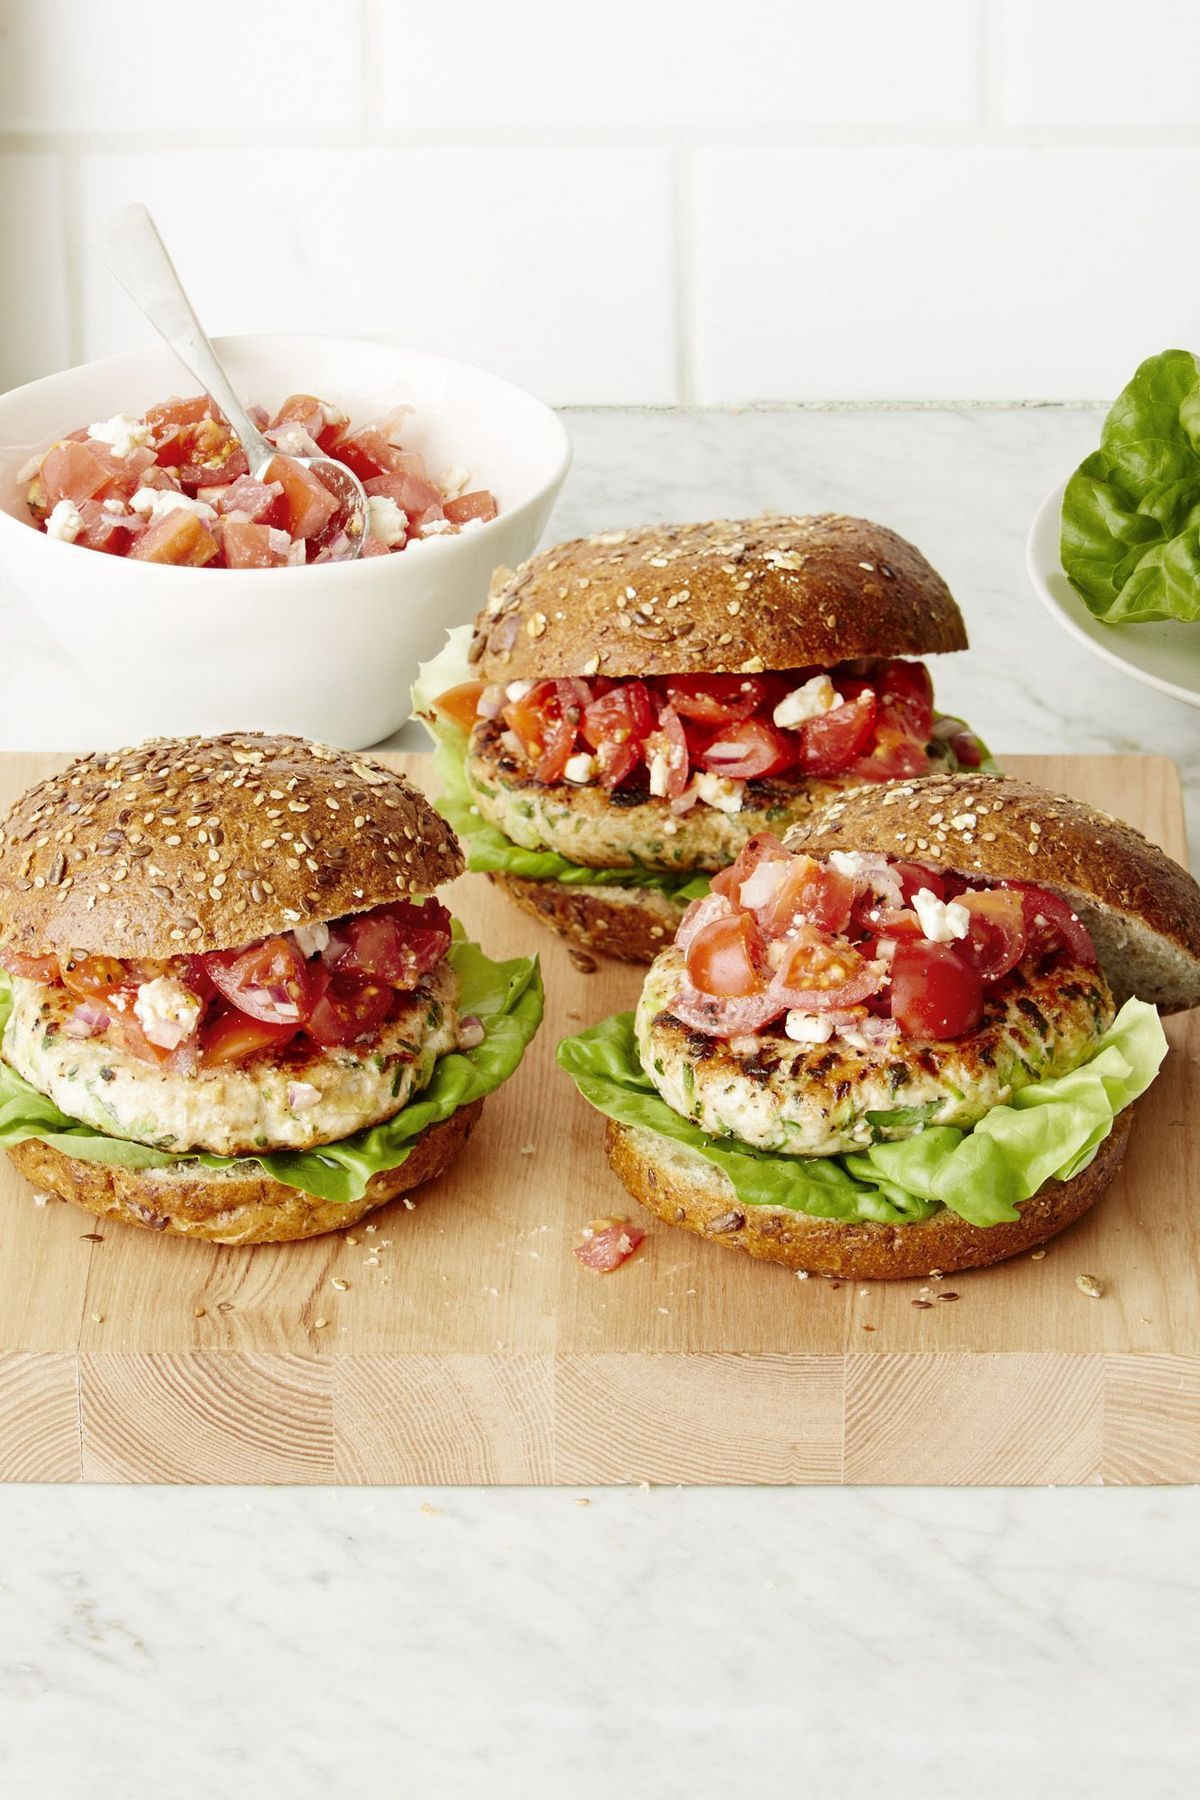 The Turkey Burger Has Come To Be The Nutritious Default Of Grilling Season Make Sure